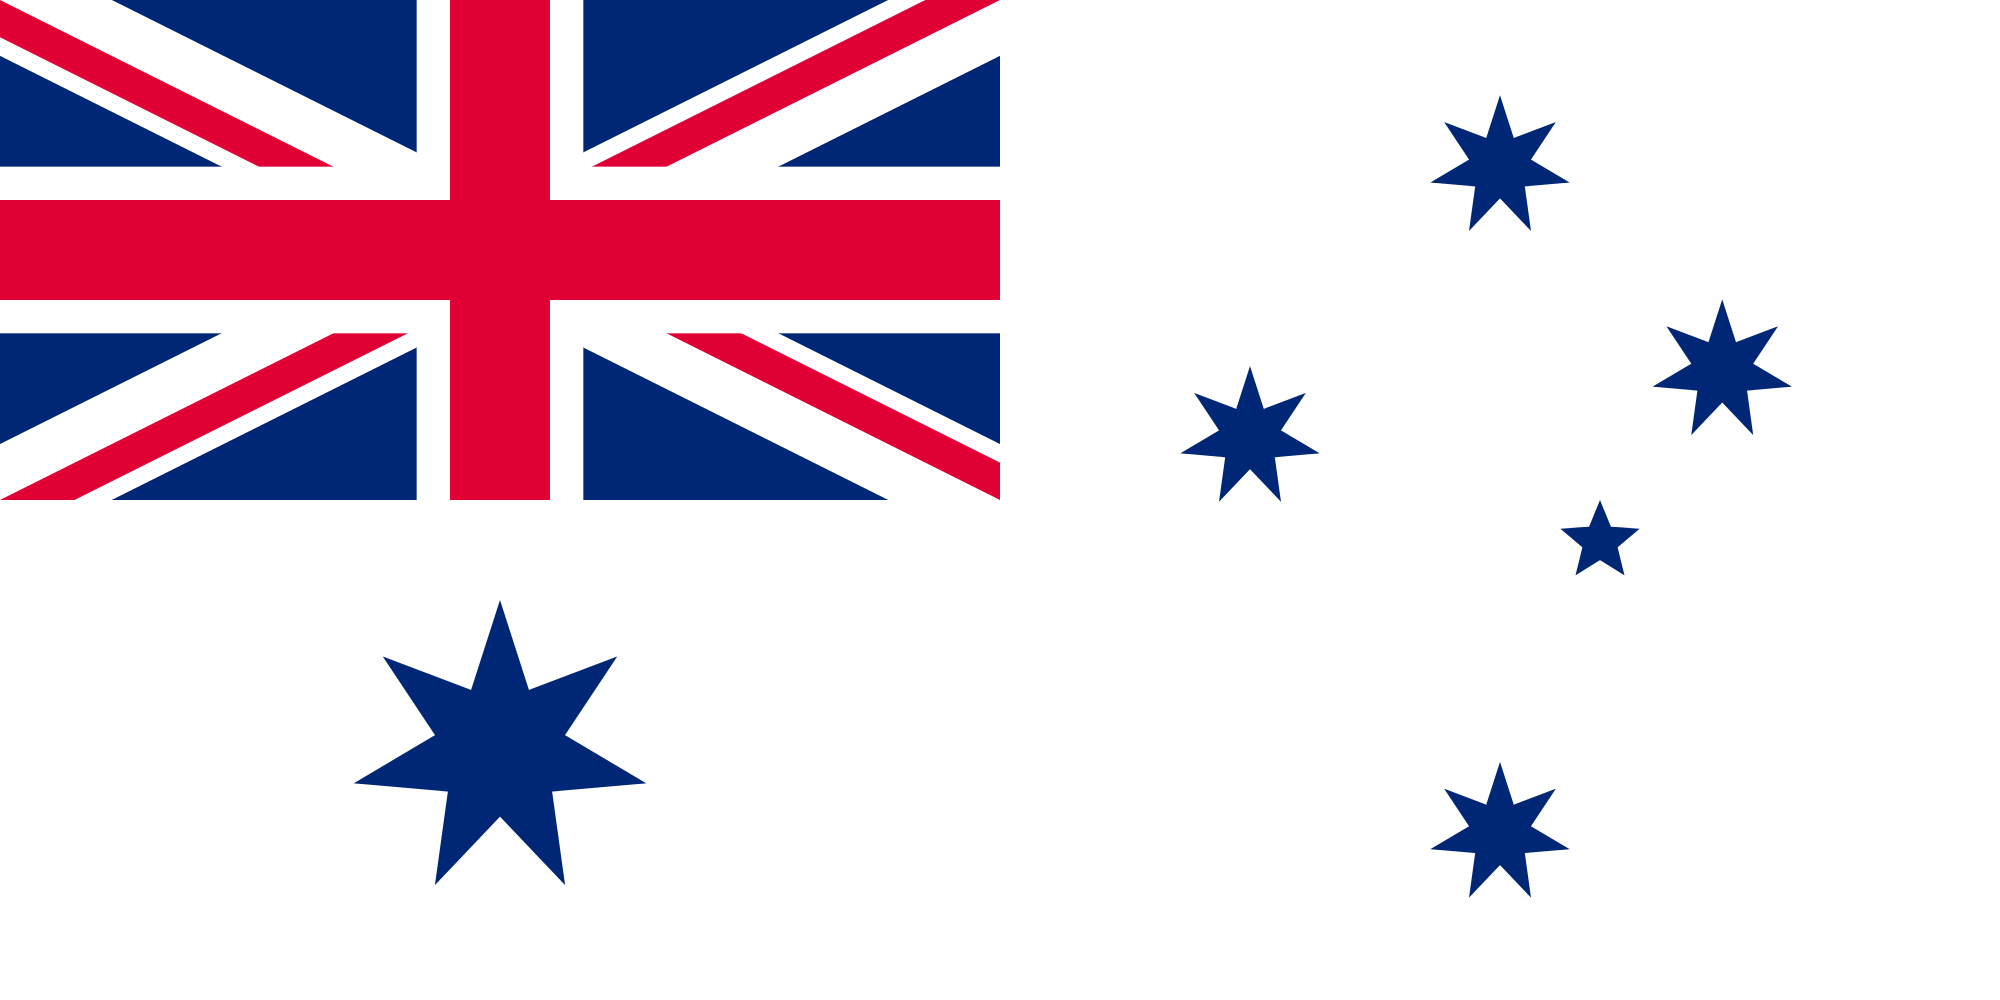 Flag Of Australia Backgrounds, Compatible - PC, Mobile, Gadgets| 2000x1000 px